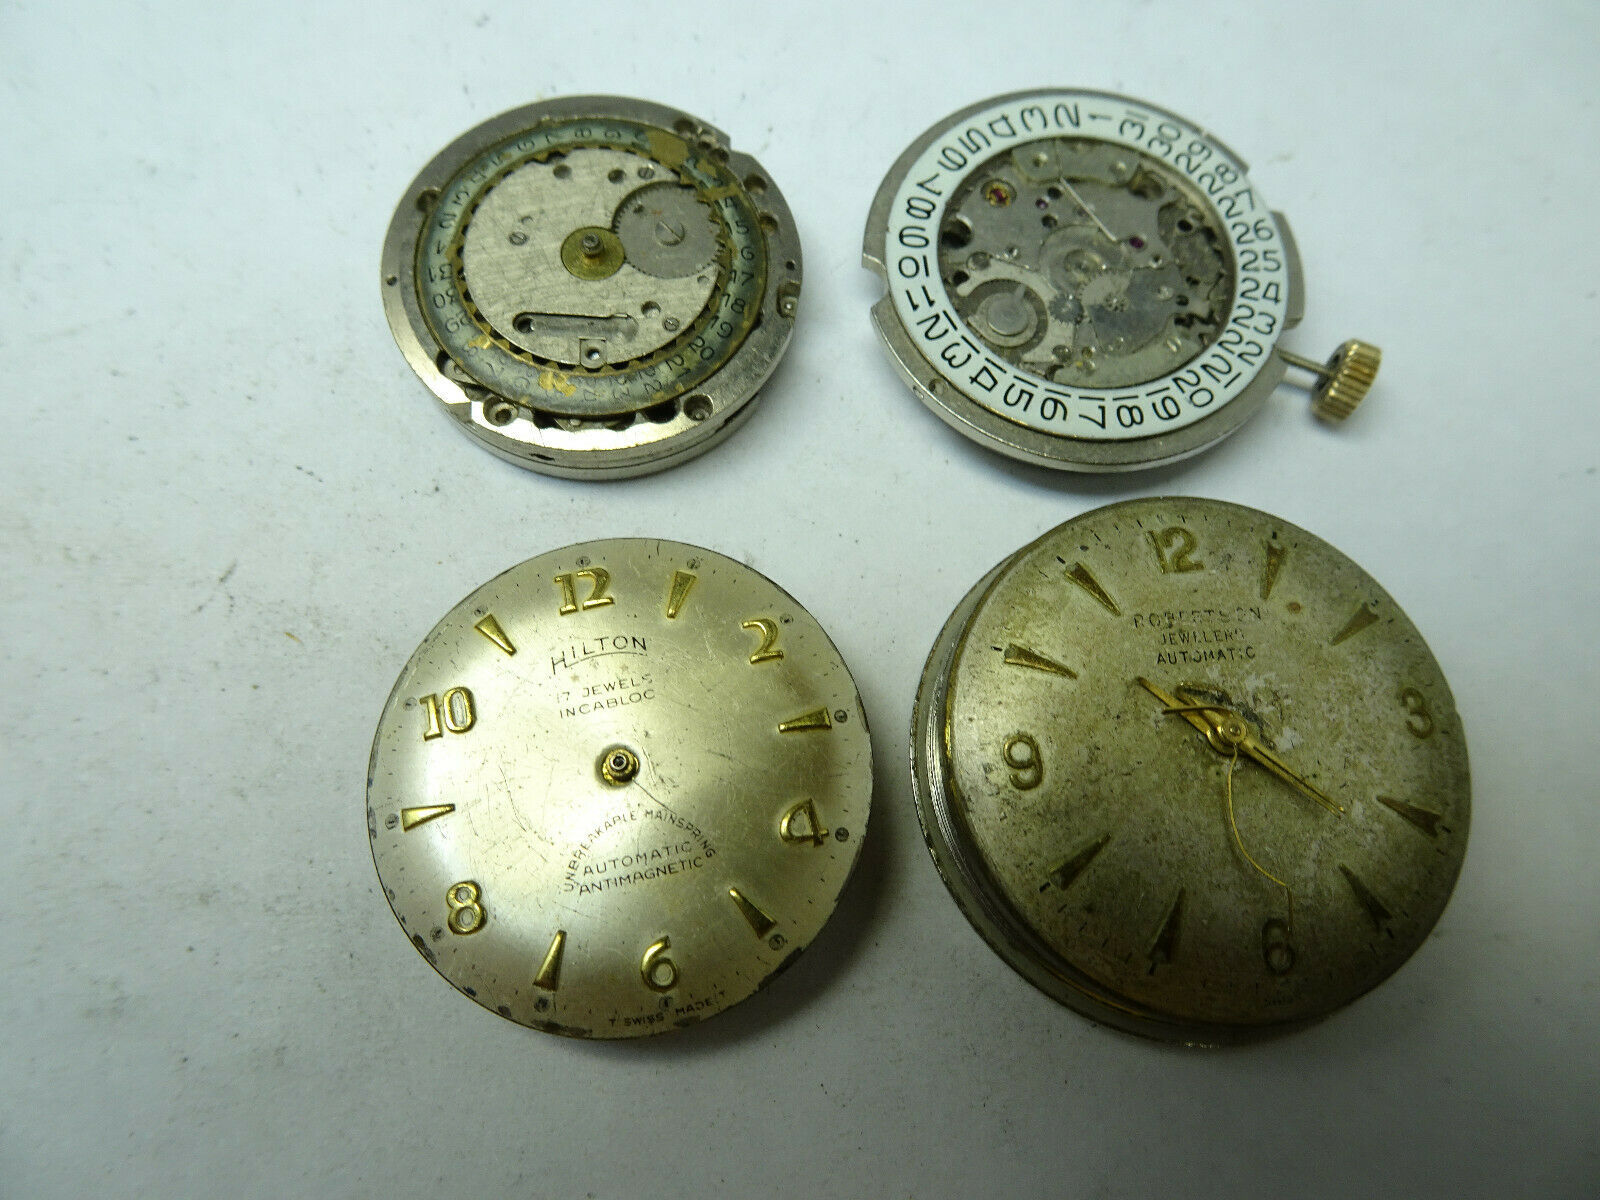 Primary image for 4 vintage STOWA HILTON UT-26 CASINO automatic watch movements for repair parts